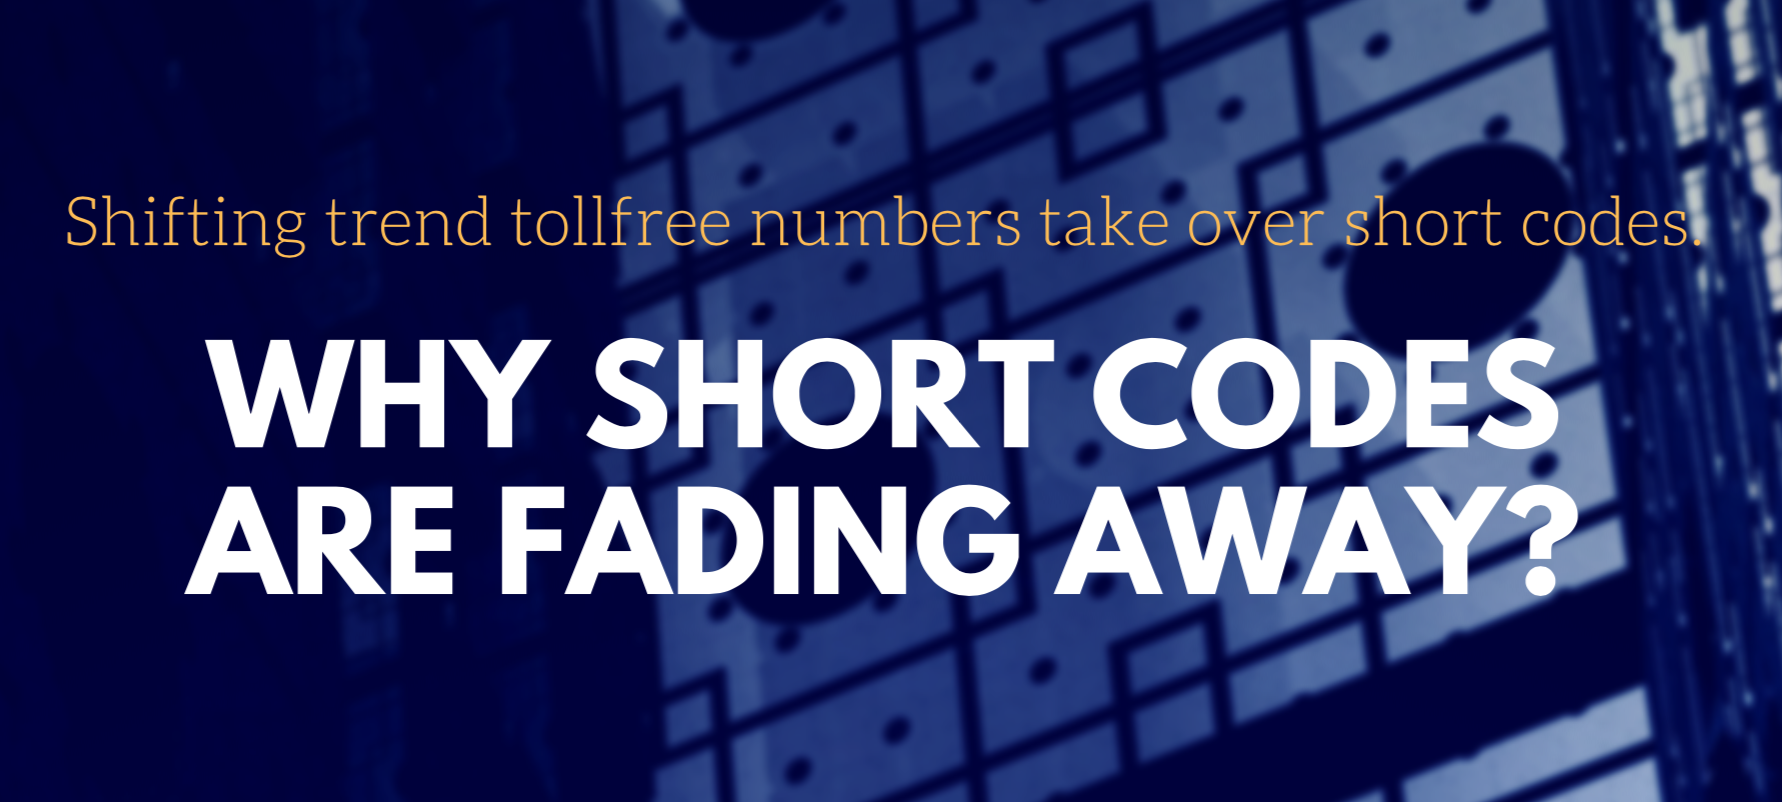 TOLLFREE taking over SHORT CODES